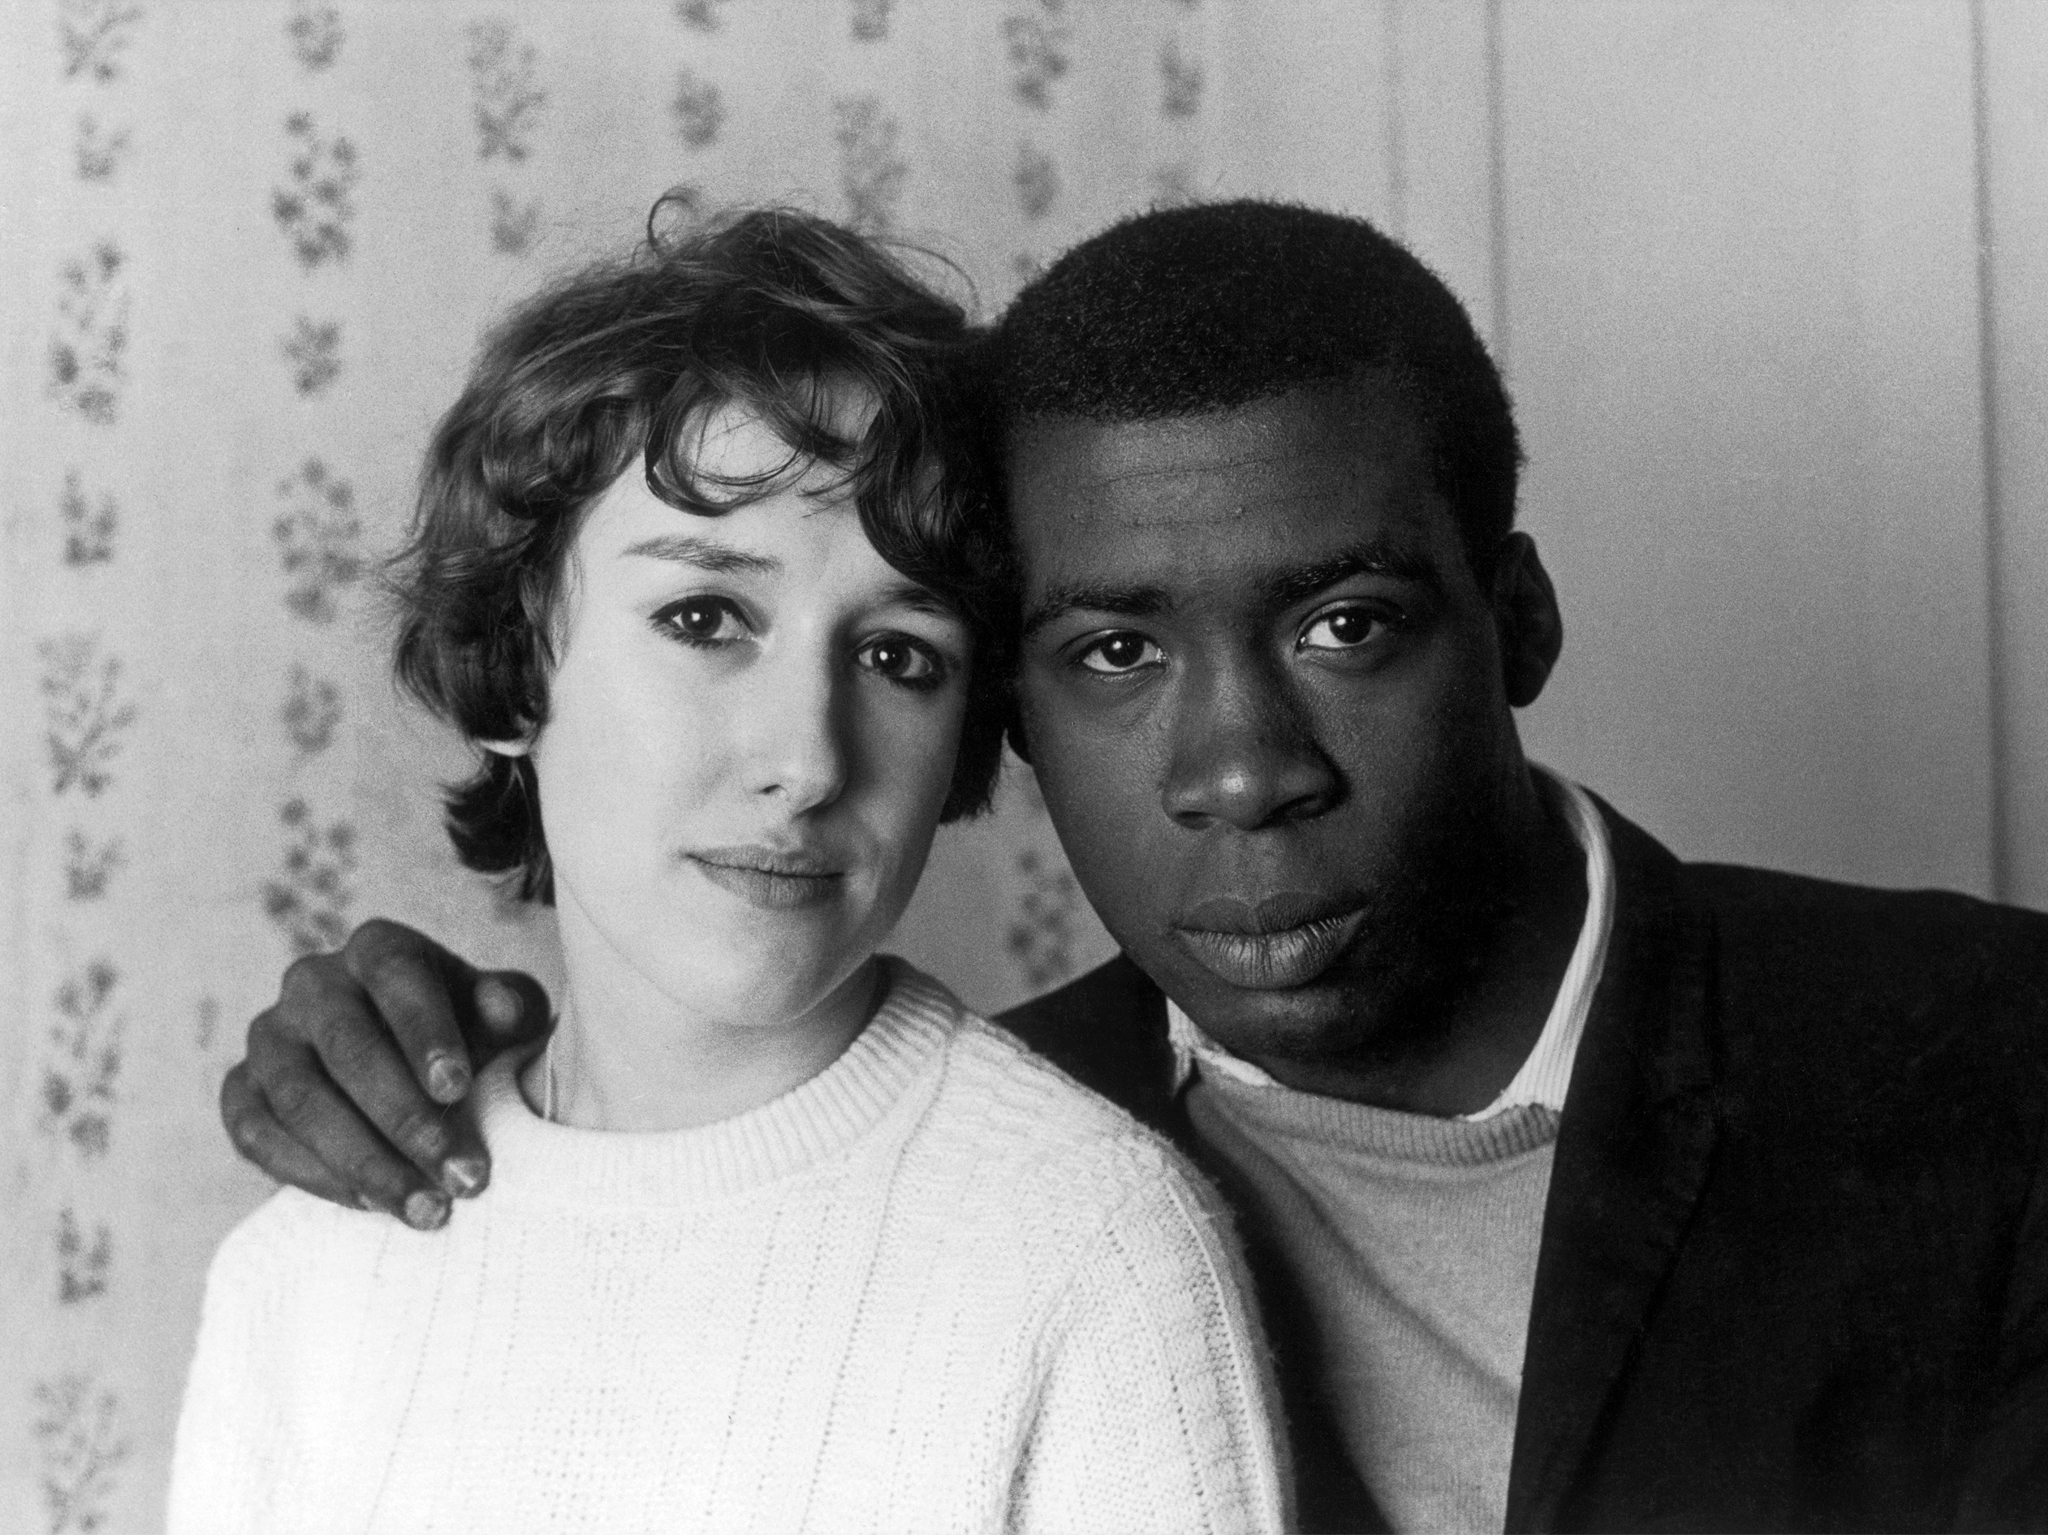 Best London photos: Charlie Phillips: 'Notting Hill Couple', 1967. © Charlie Phillips/Victoria and Albert Museum, London